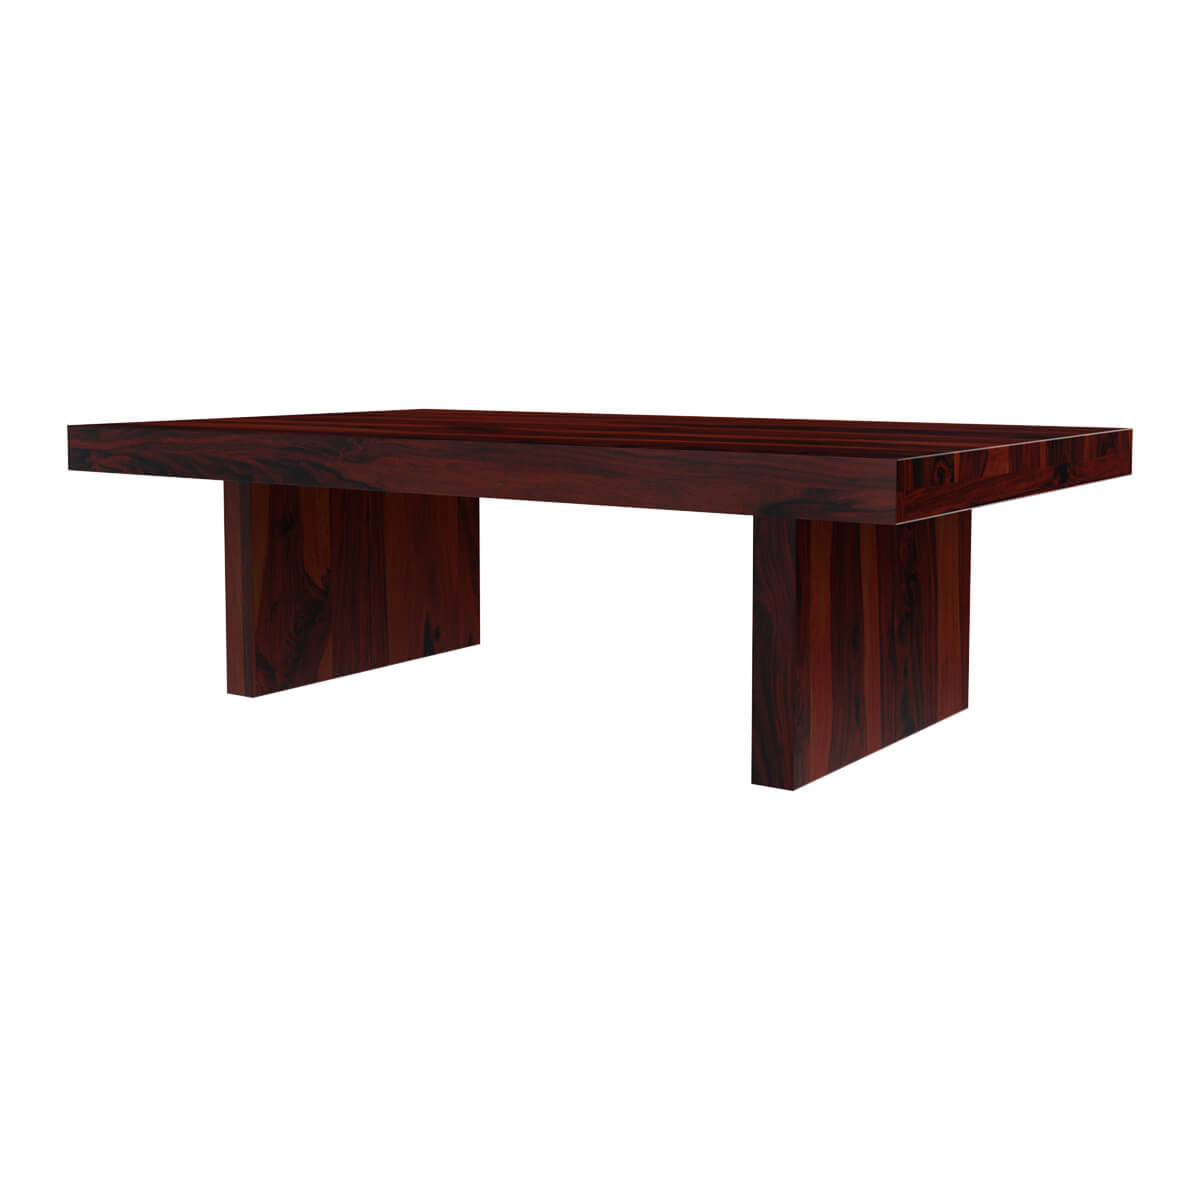 Espresso Solid Wood Block Style Cocktail Coffee Table